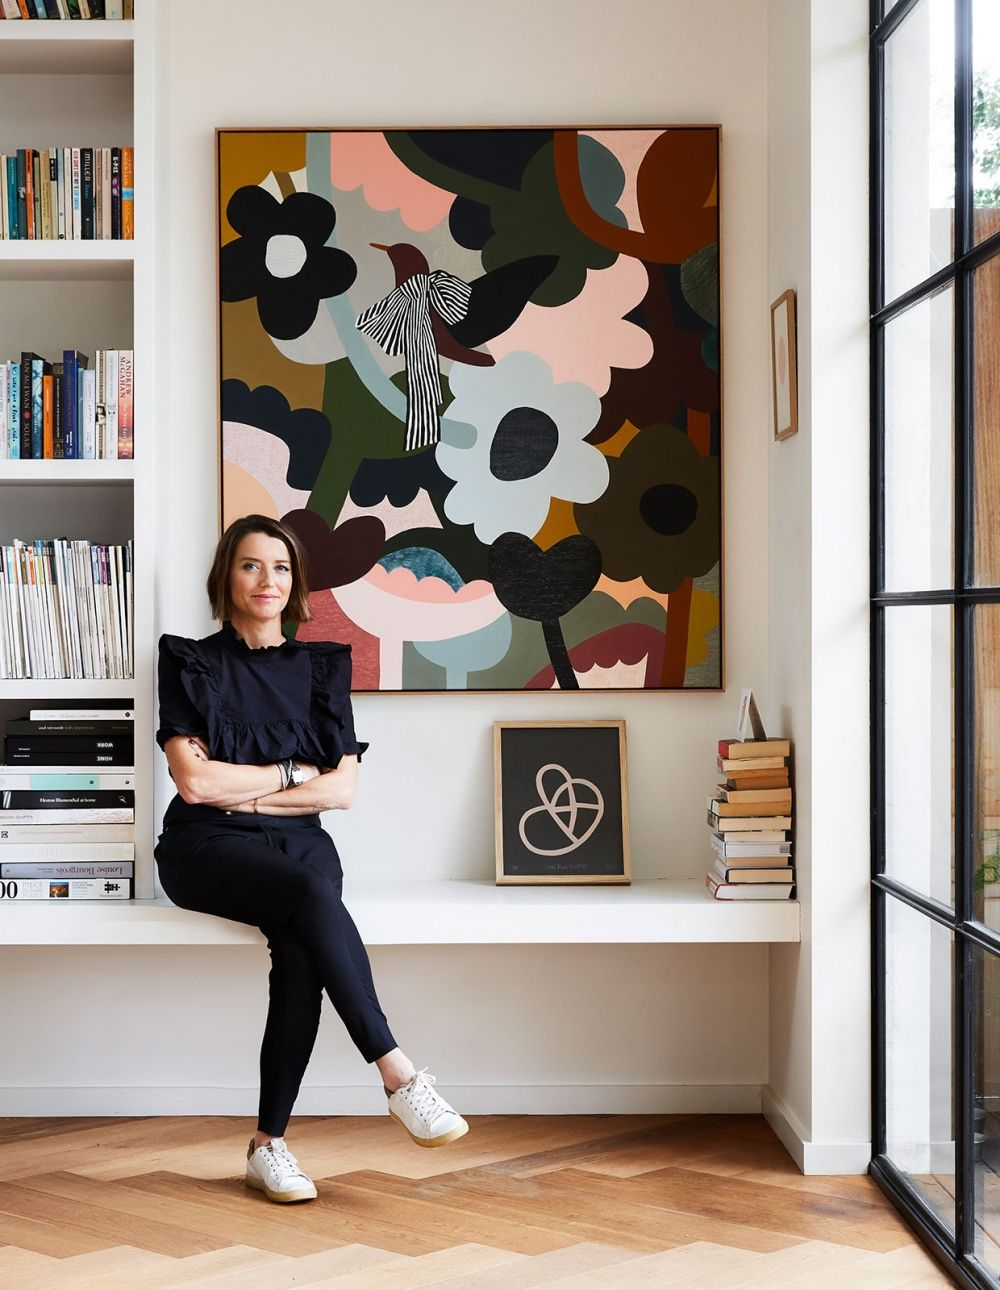 Rachel in front of her 'Peace Bird' artwork. 'We only have a couple of paintings in the house, normally on rotation based on what's sitting about the studio. This one will stay because it fits the nook so well!' Rachel tells us. Parquetry floors from Precision Flooring